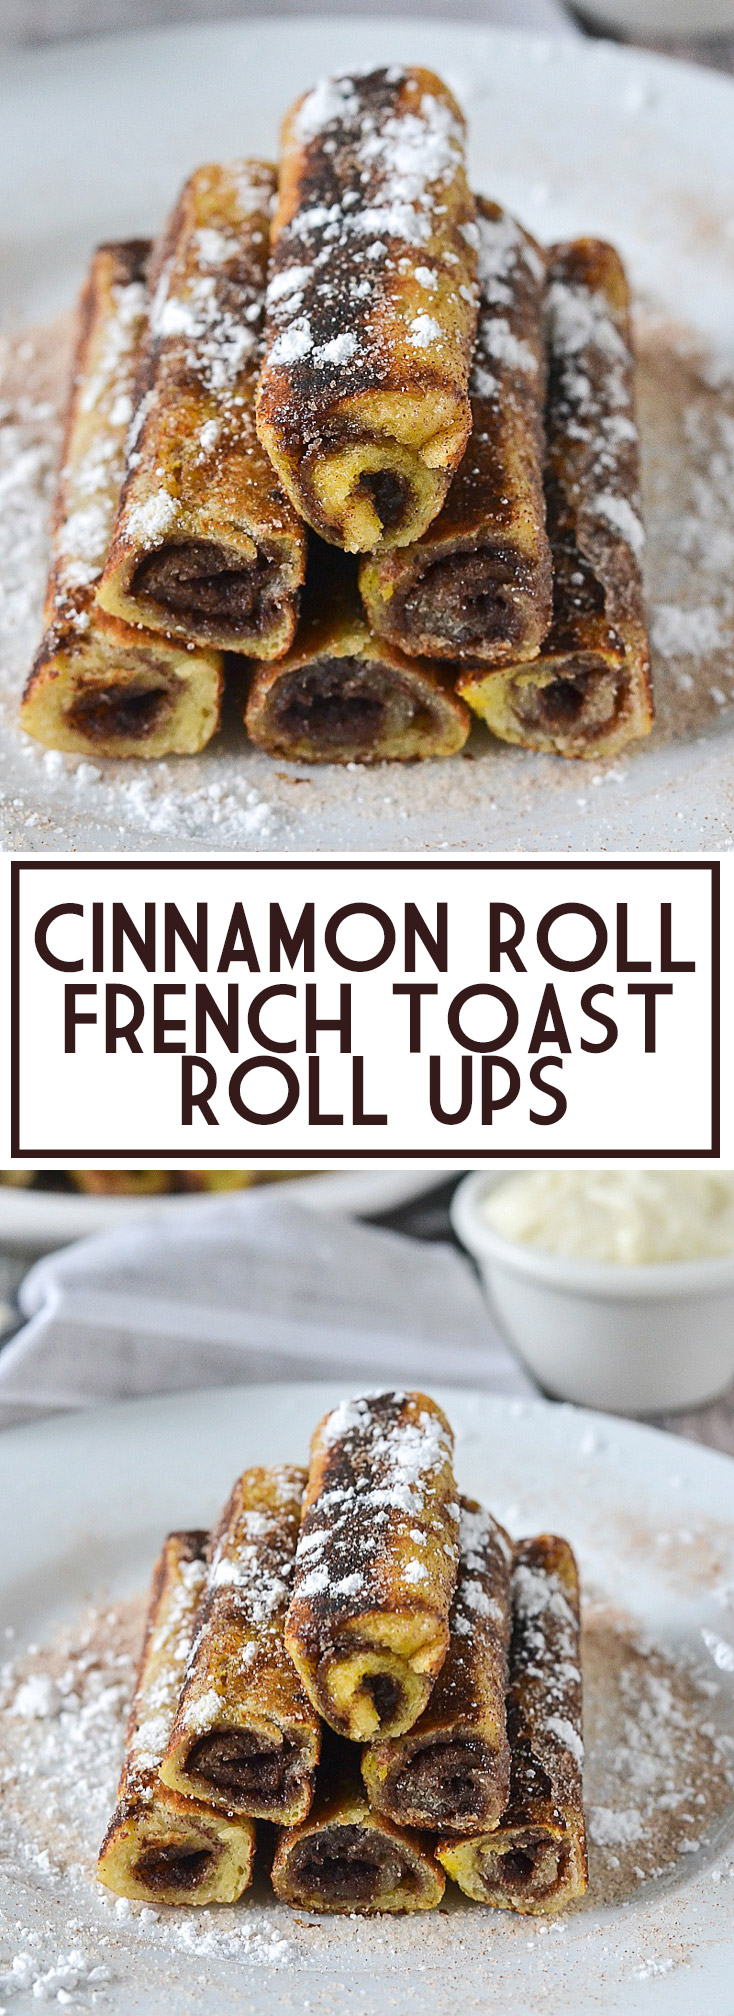 Cinnamon Roll French Toast Roll Ups | www.motherthyme.com